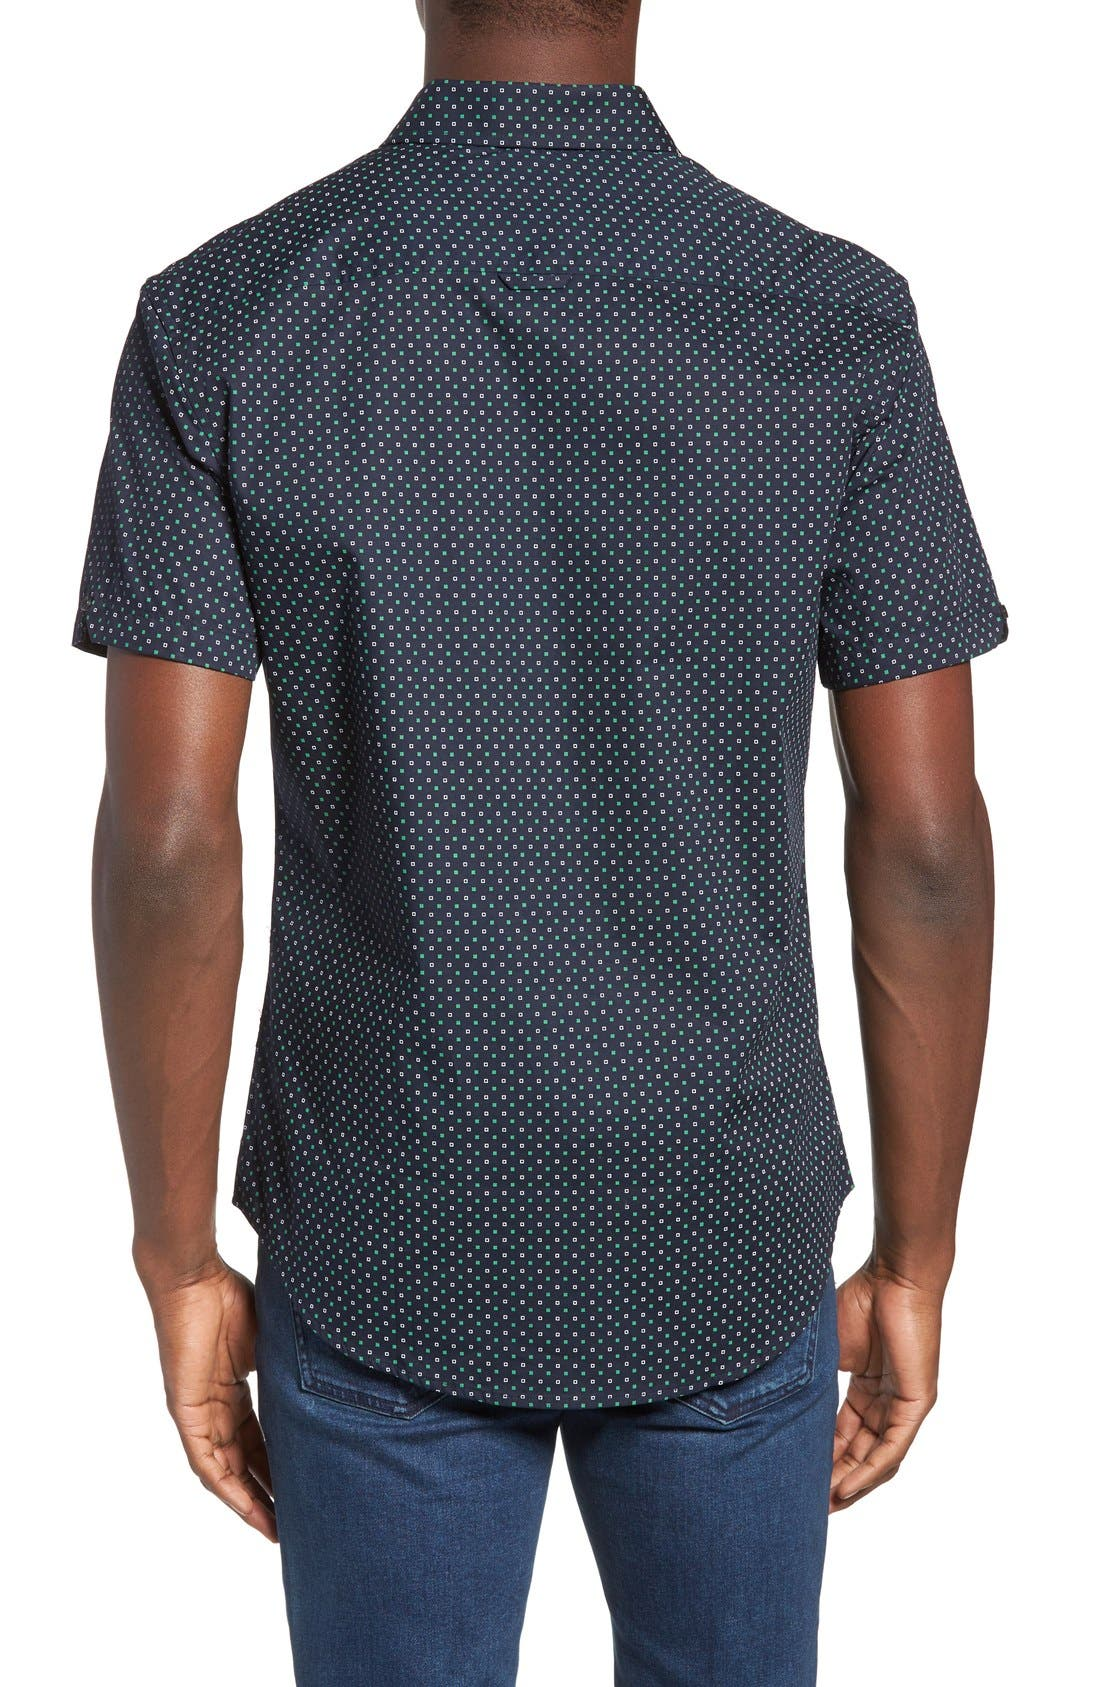 Chameleon Trim Fit Print Woven Shirt,                             Alternate thumbnail 4, color,                             300